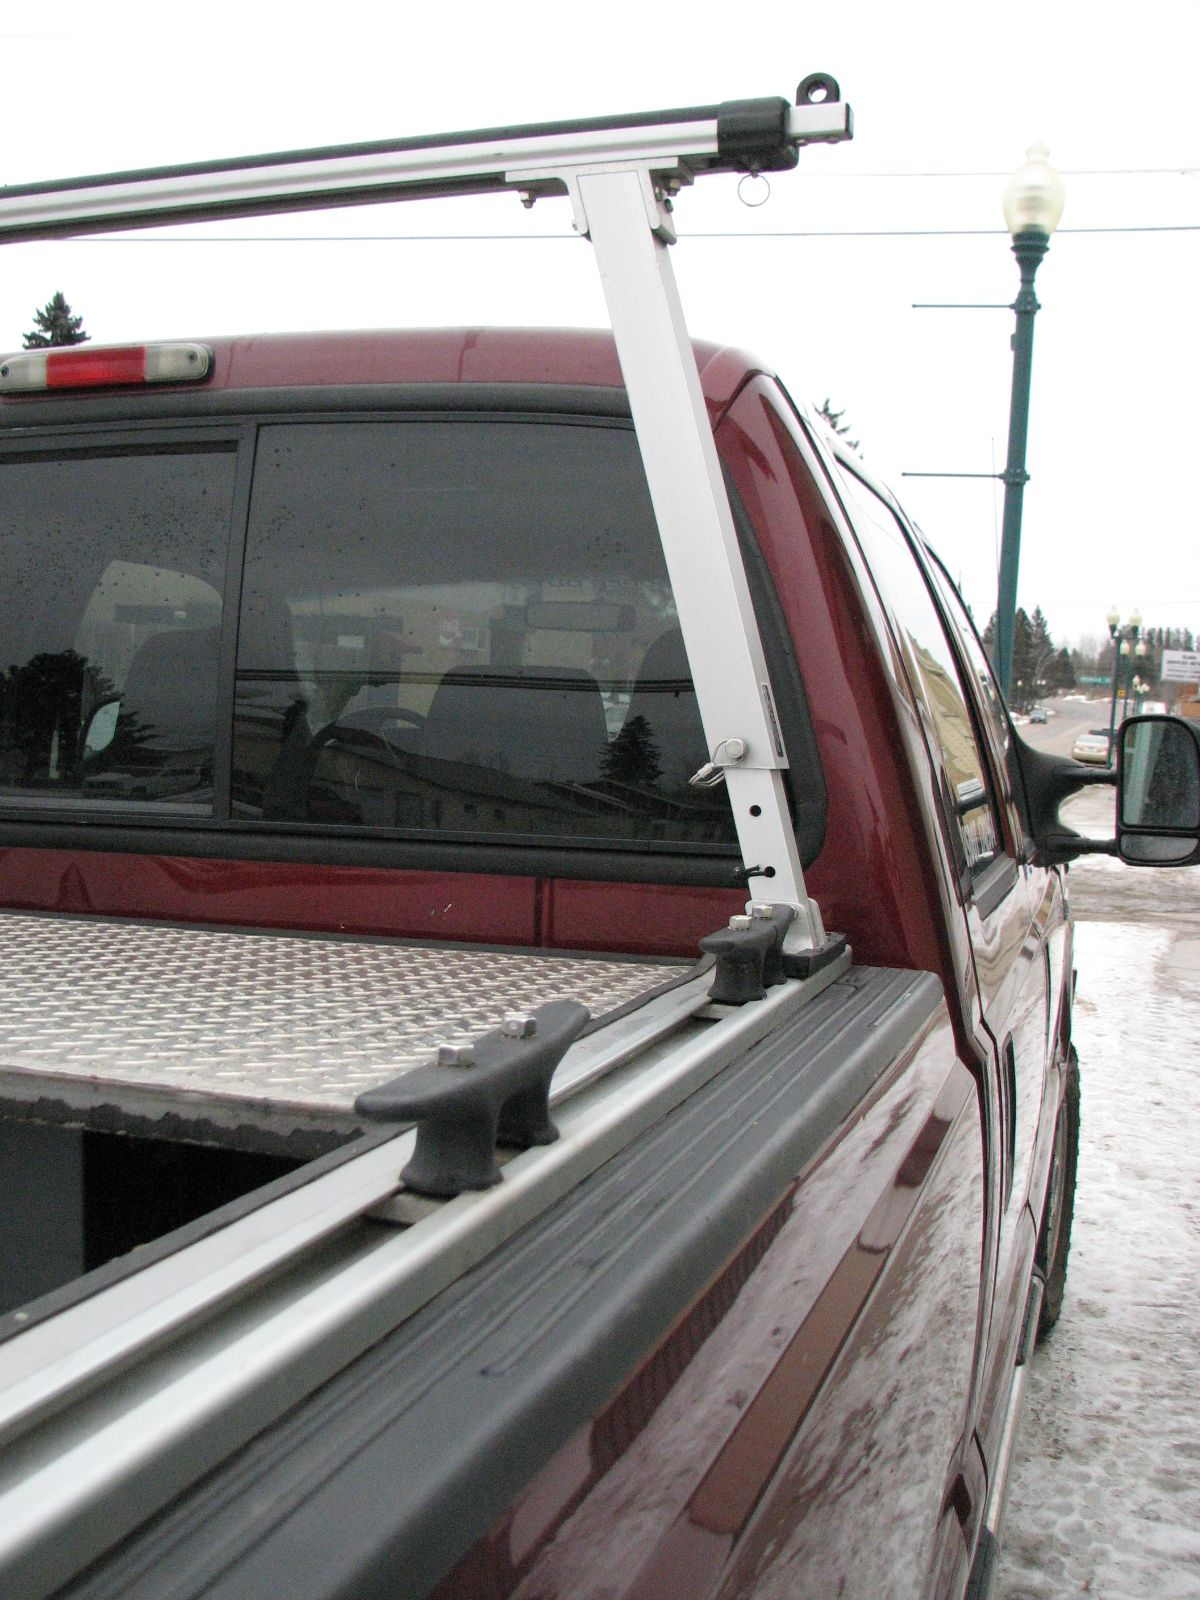 One Tuff Truck Rack Is For Of The Most Versatile Clamp On Racks Market Today It Can Hold Up To 650 Lbs